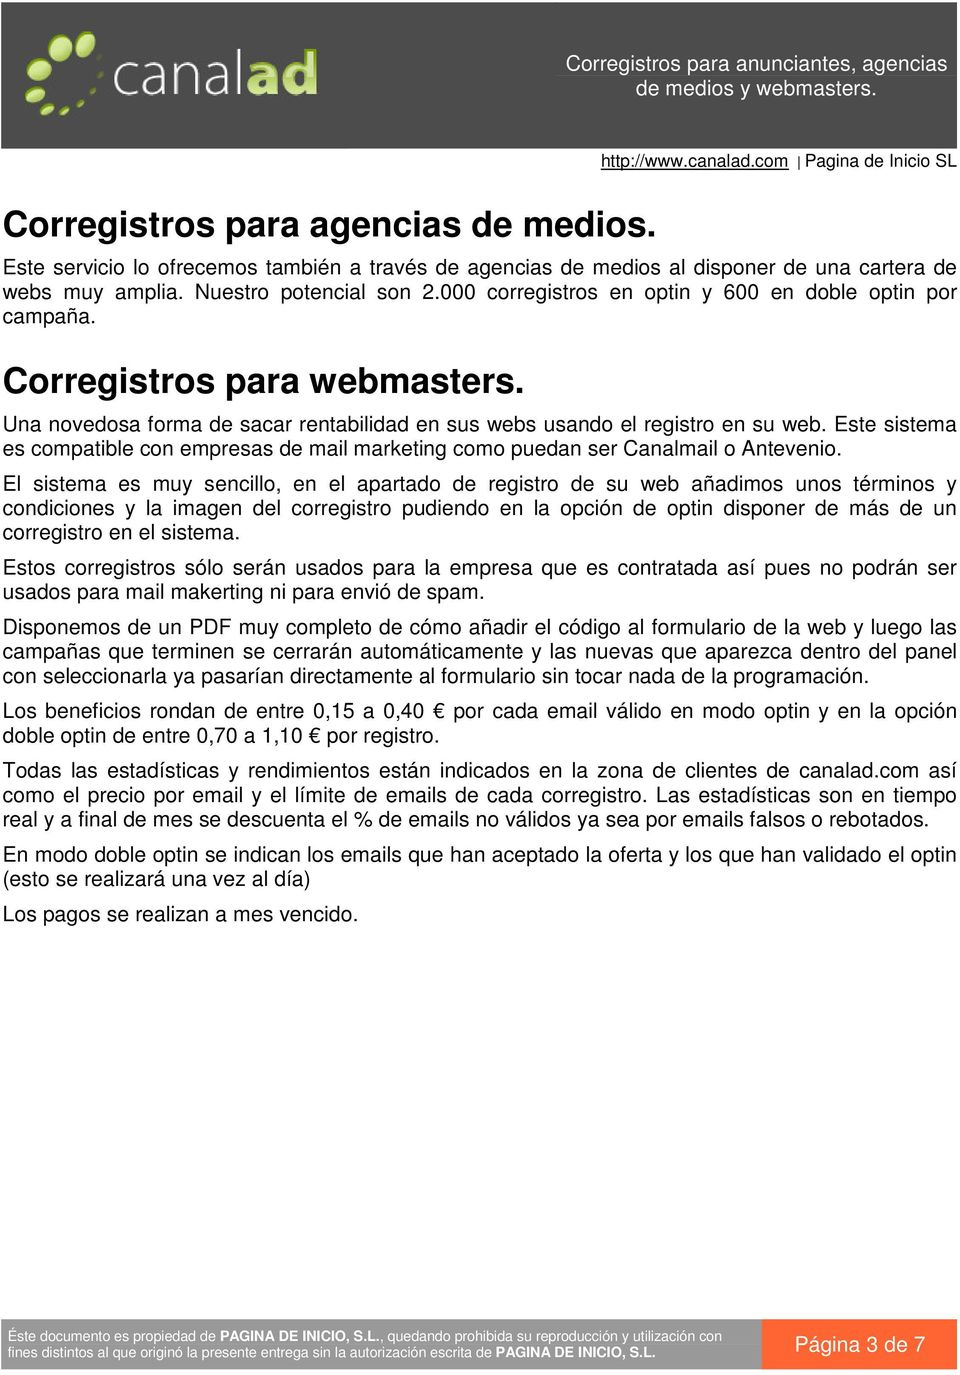 Este sistema es compatible con empresas de mail marketing como puedan ser Canalmail o Antevenio.